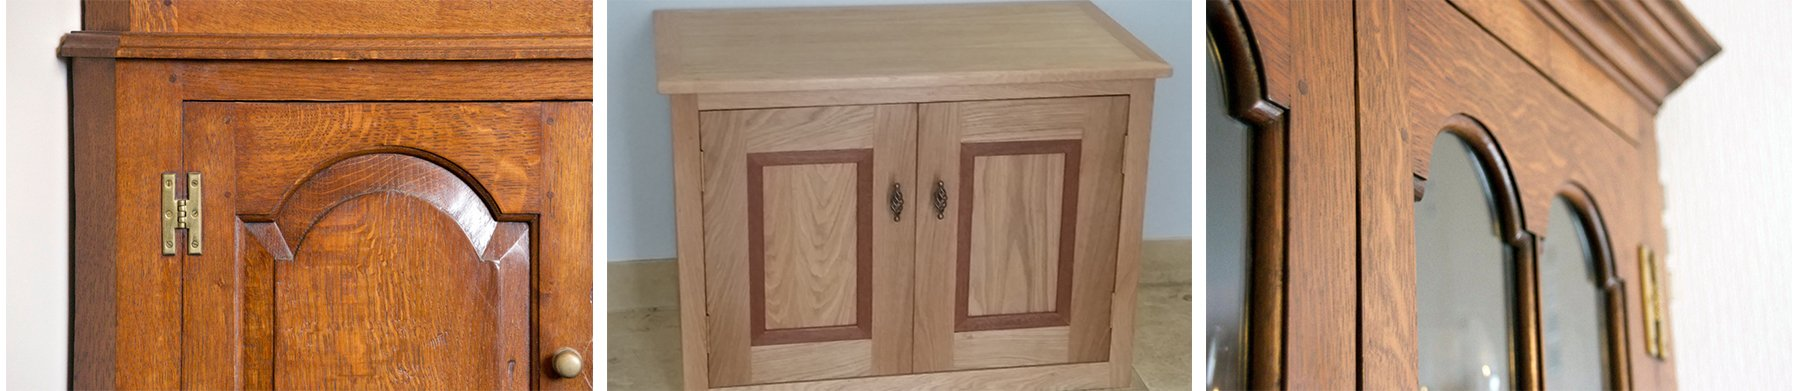 Bespoke furniture North Wales handmade by Calon Furniture Conwy